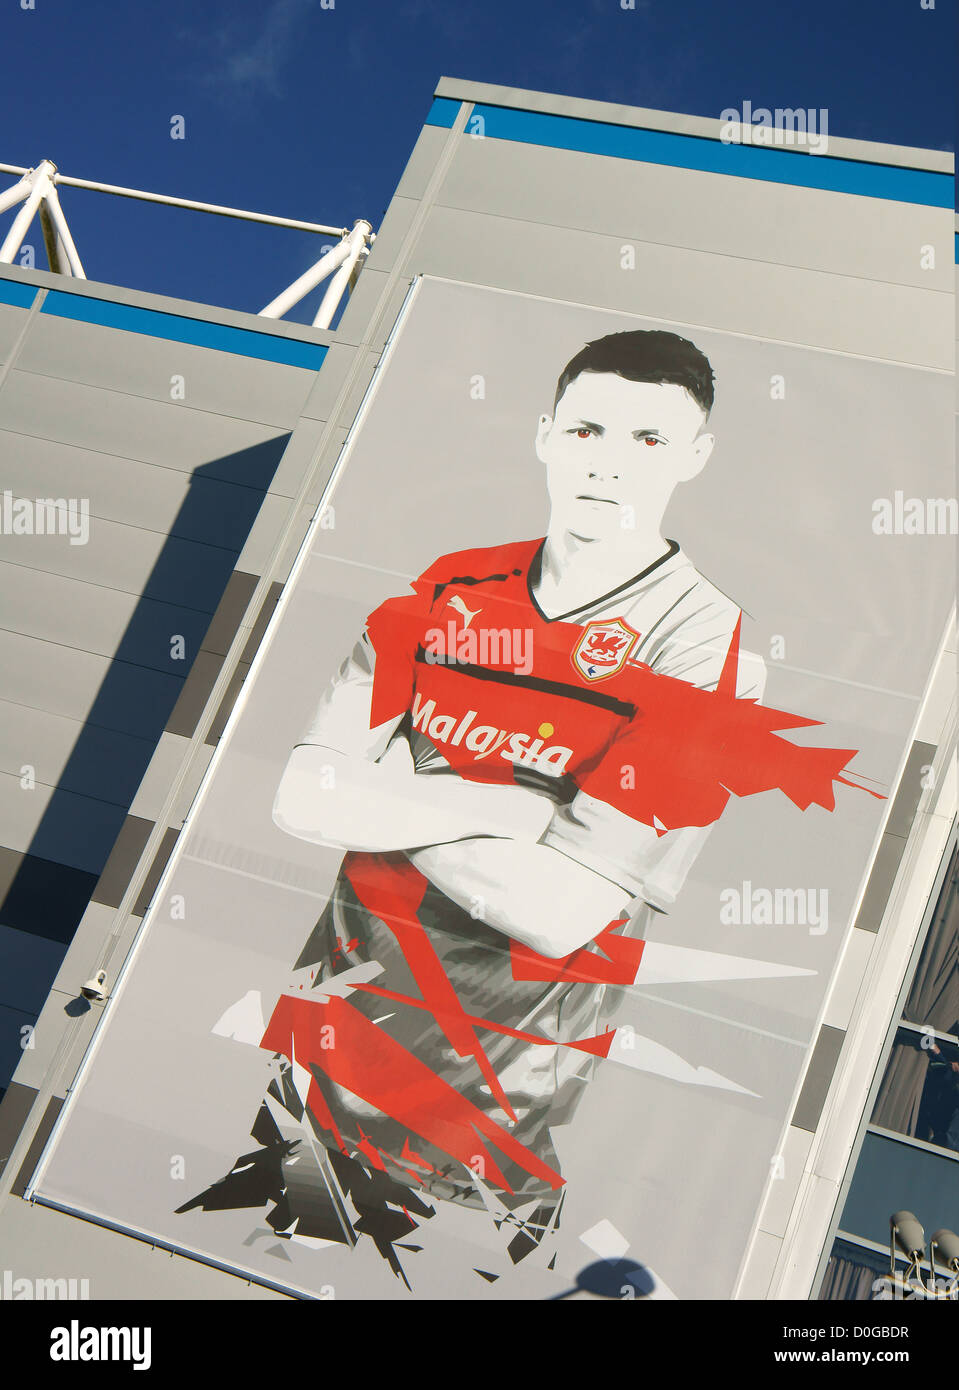 Image of a Cardiff City Footballer on the outside of the Cardiff City Stadium, Cardiff, South Wales, UK - Stock Image